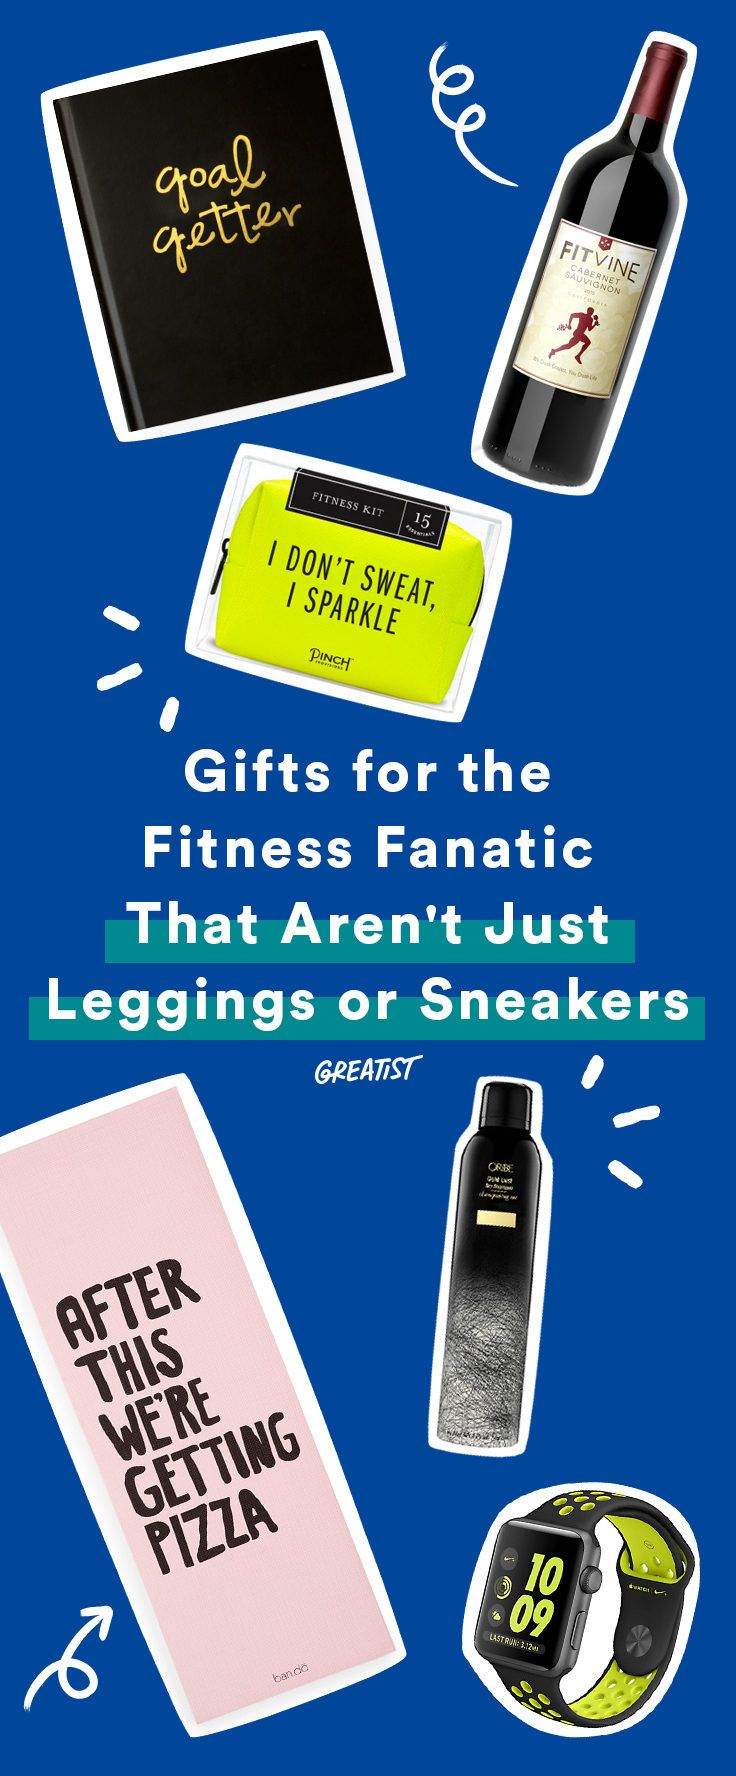 The best things short of a year-long gym membership.  #greatist http://greatist.com/move/gift-ideas-fitness-gifts-that-arent-leggings-or-sneakers